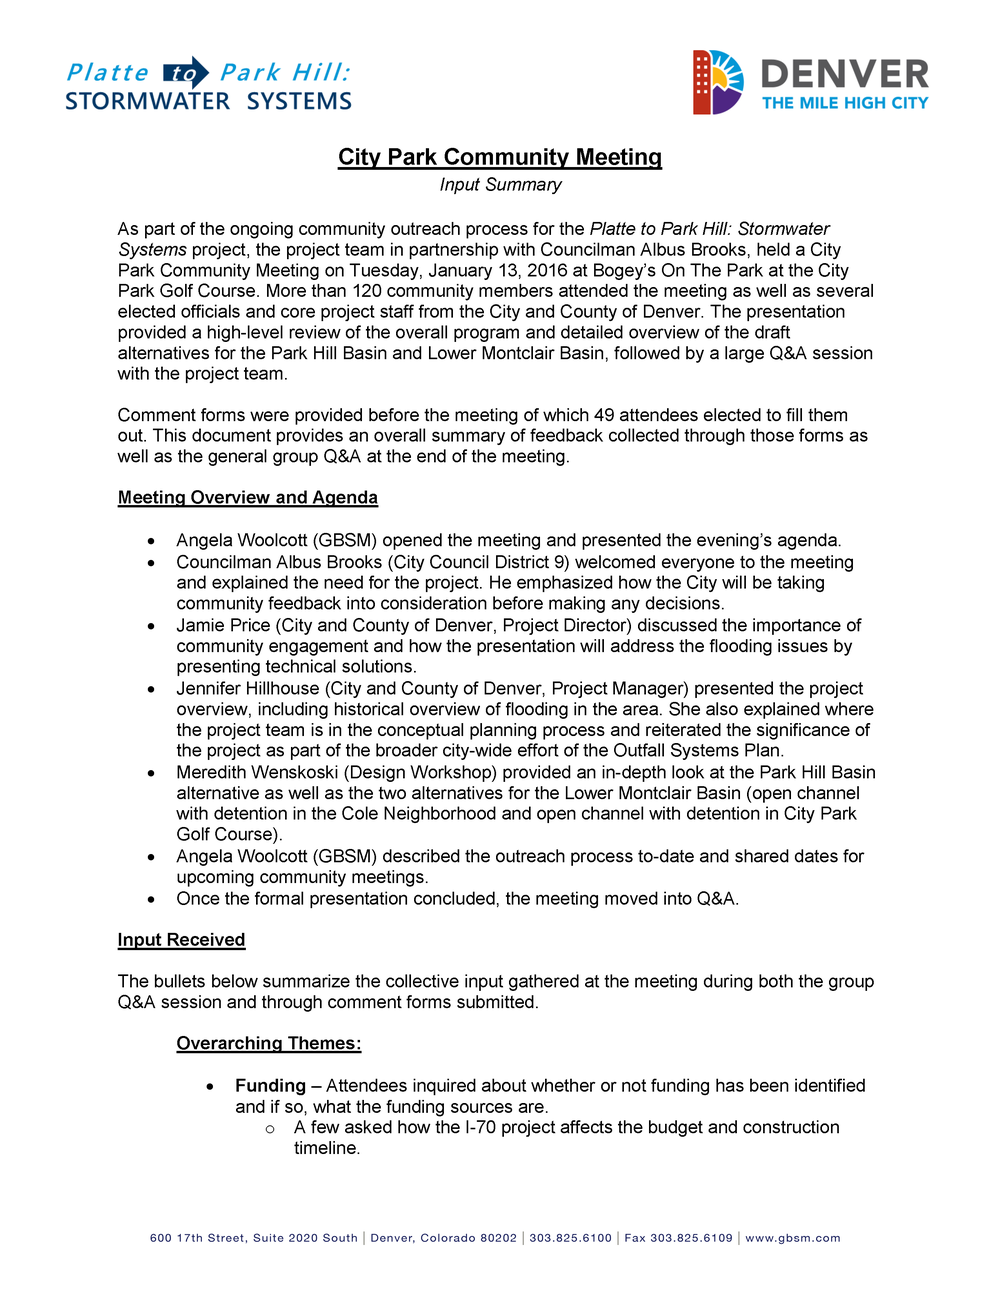 Stormwater Commmunity Input Summary